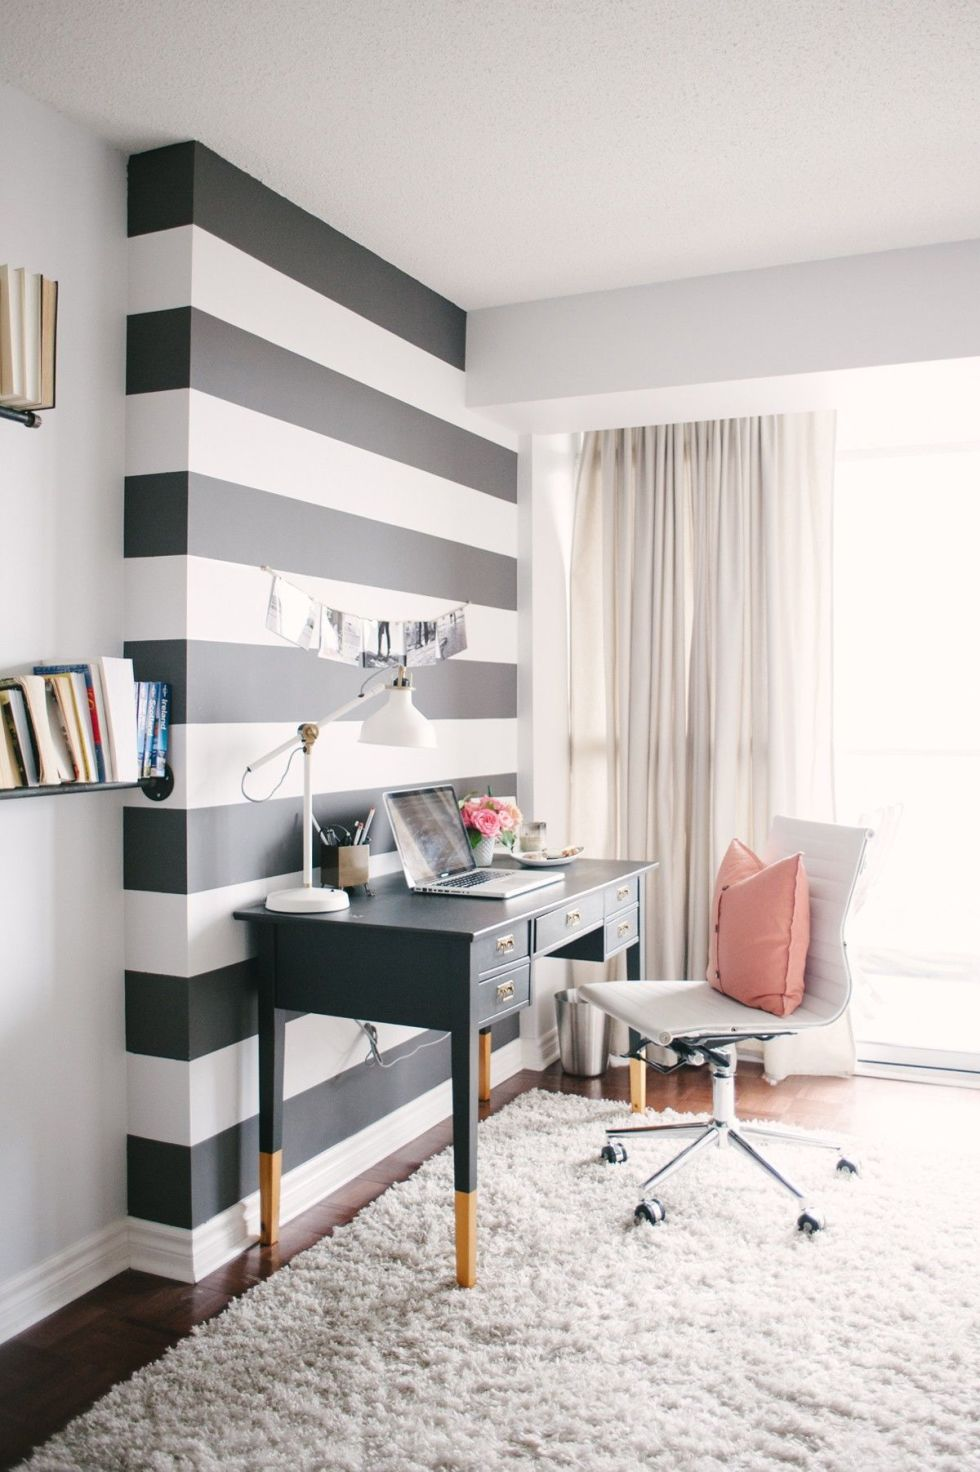 Swell 60 Best Home Office Decorating Ideas Design Photos Of Home Largest Home Design Picture Inspirations Pitcheantrous